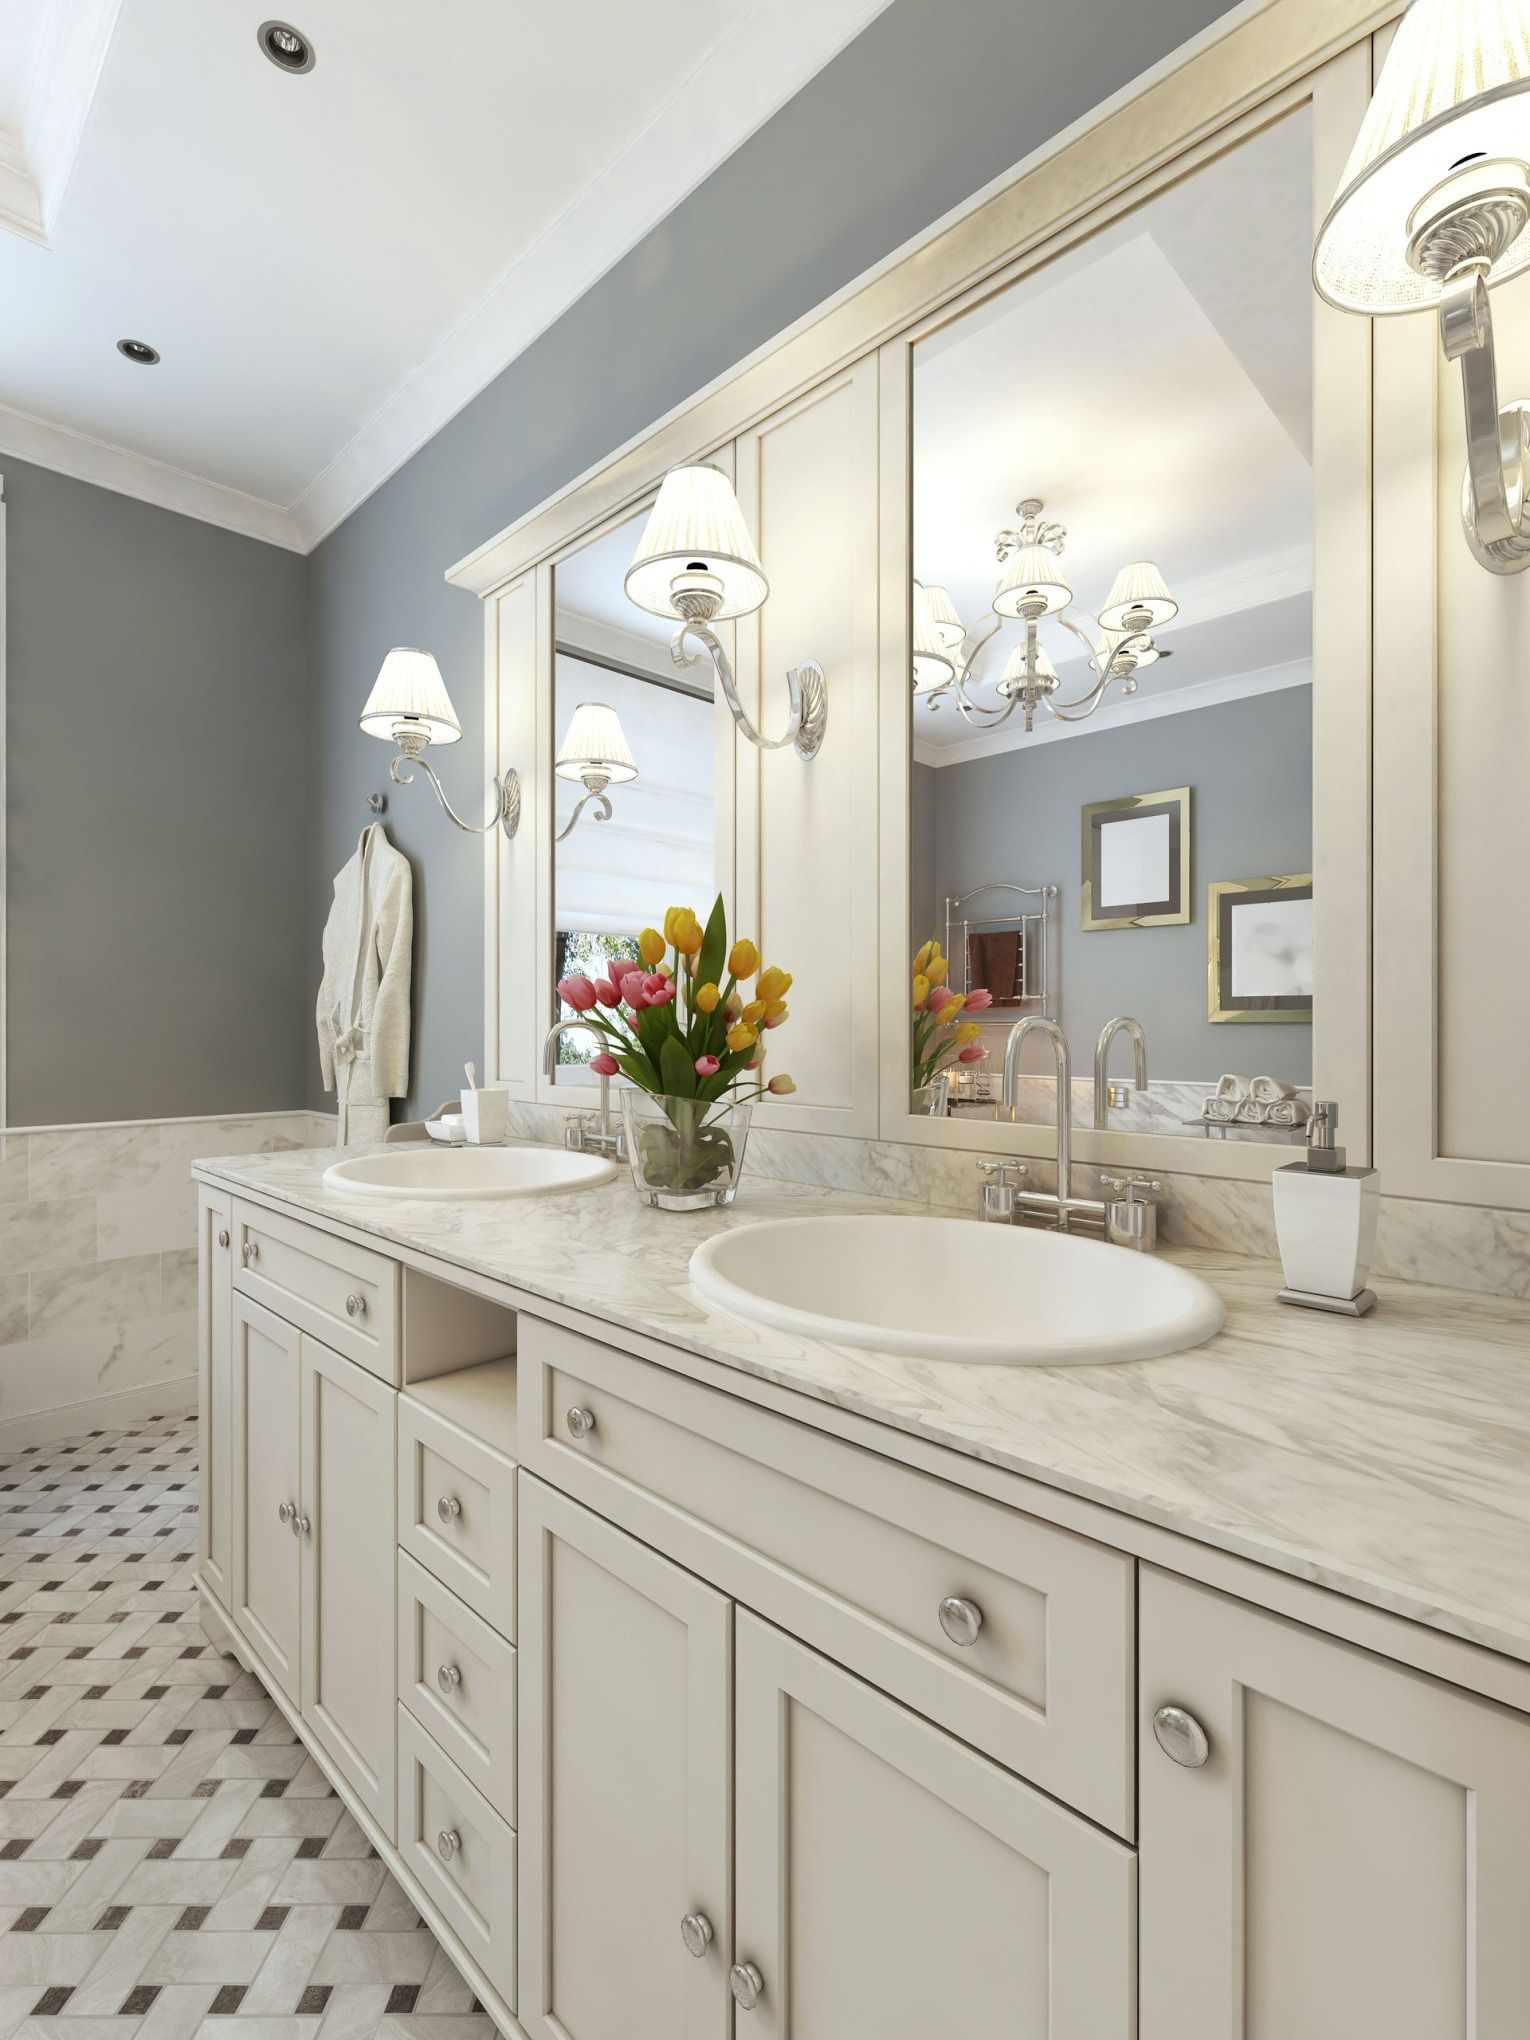 Blog Post Bath Spaces 4 Thrifty Trends For Bathroom Lighting Bathroom Remodel Pictures Bathroom Styling Bathrooms Remodel